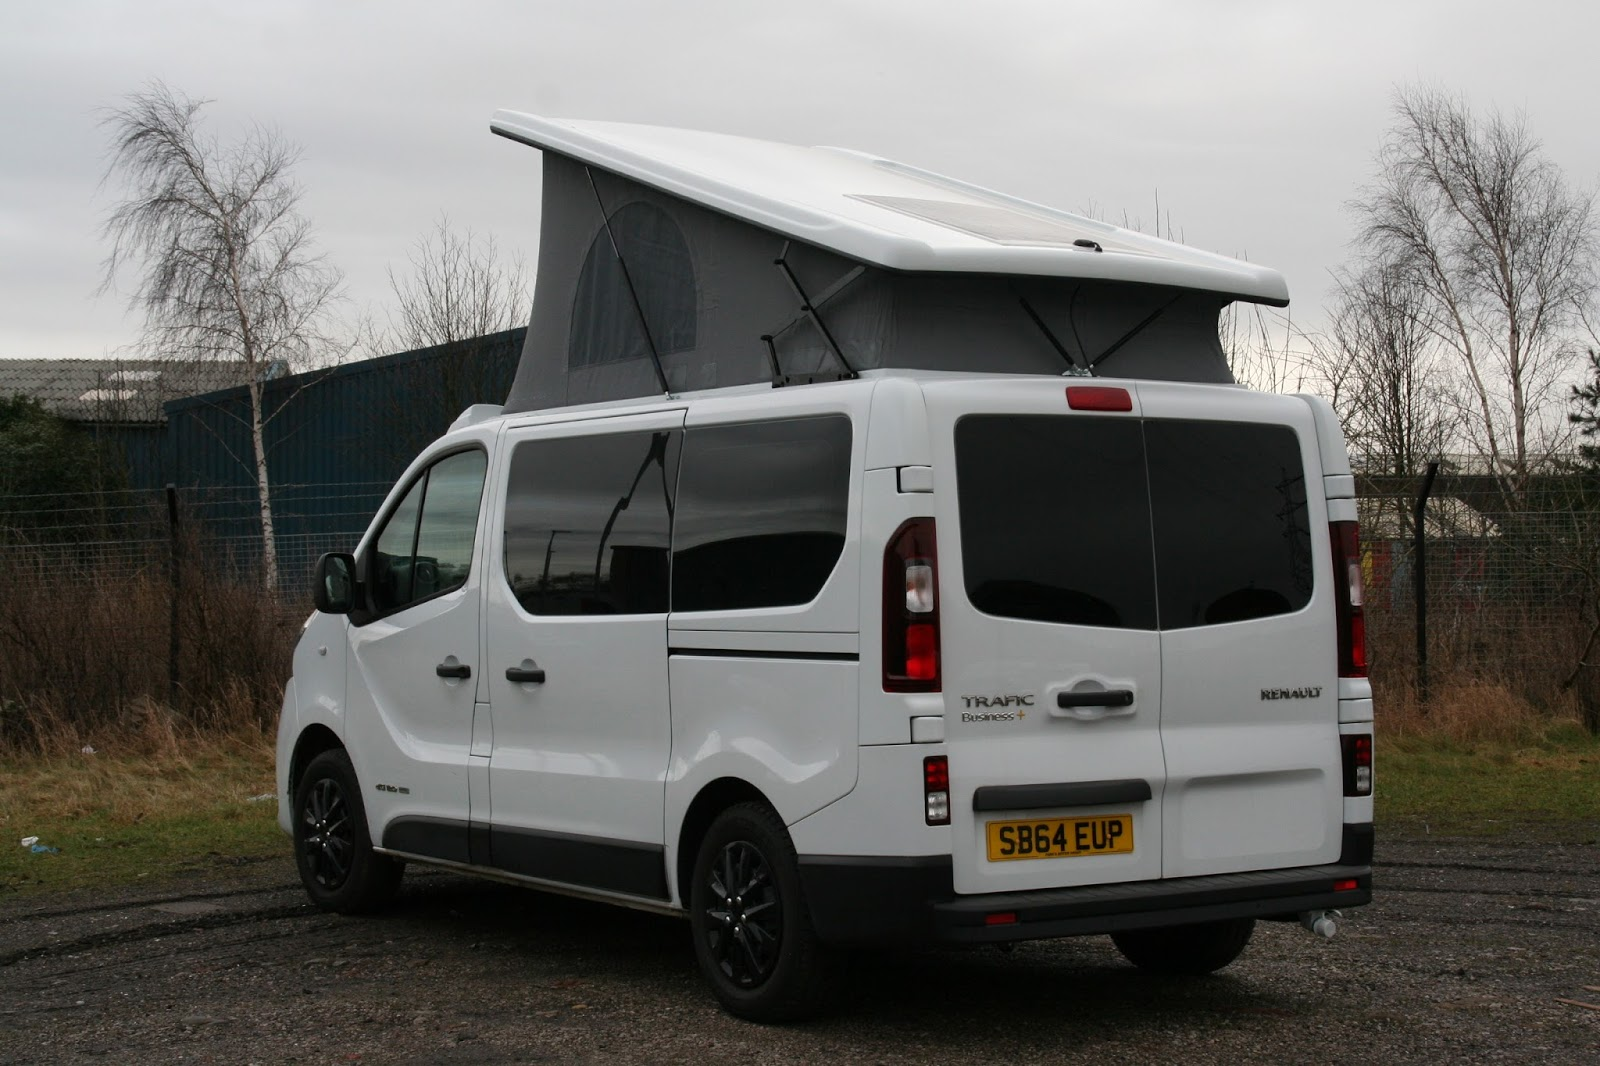 van bodies lancs ltd completed renault trafic camper van. Black Bedroom Furniture Sets. Home Design Ideas